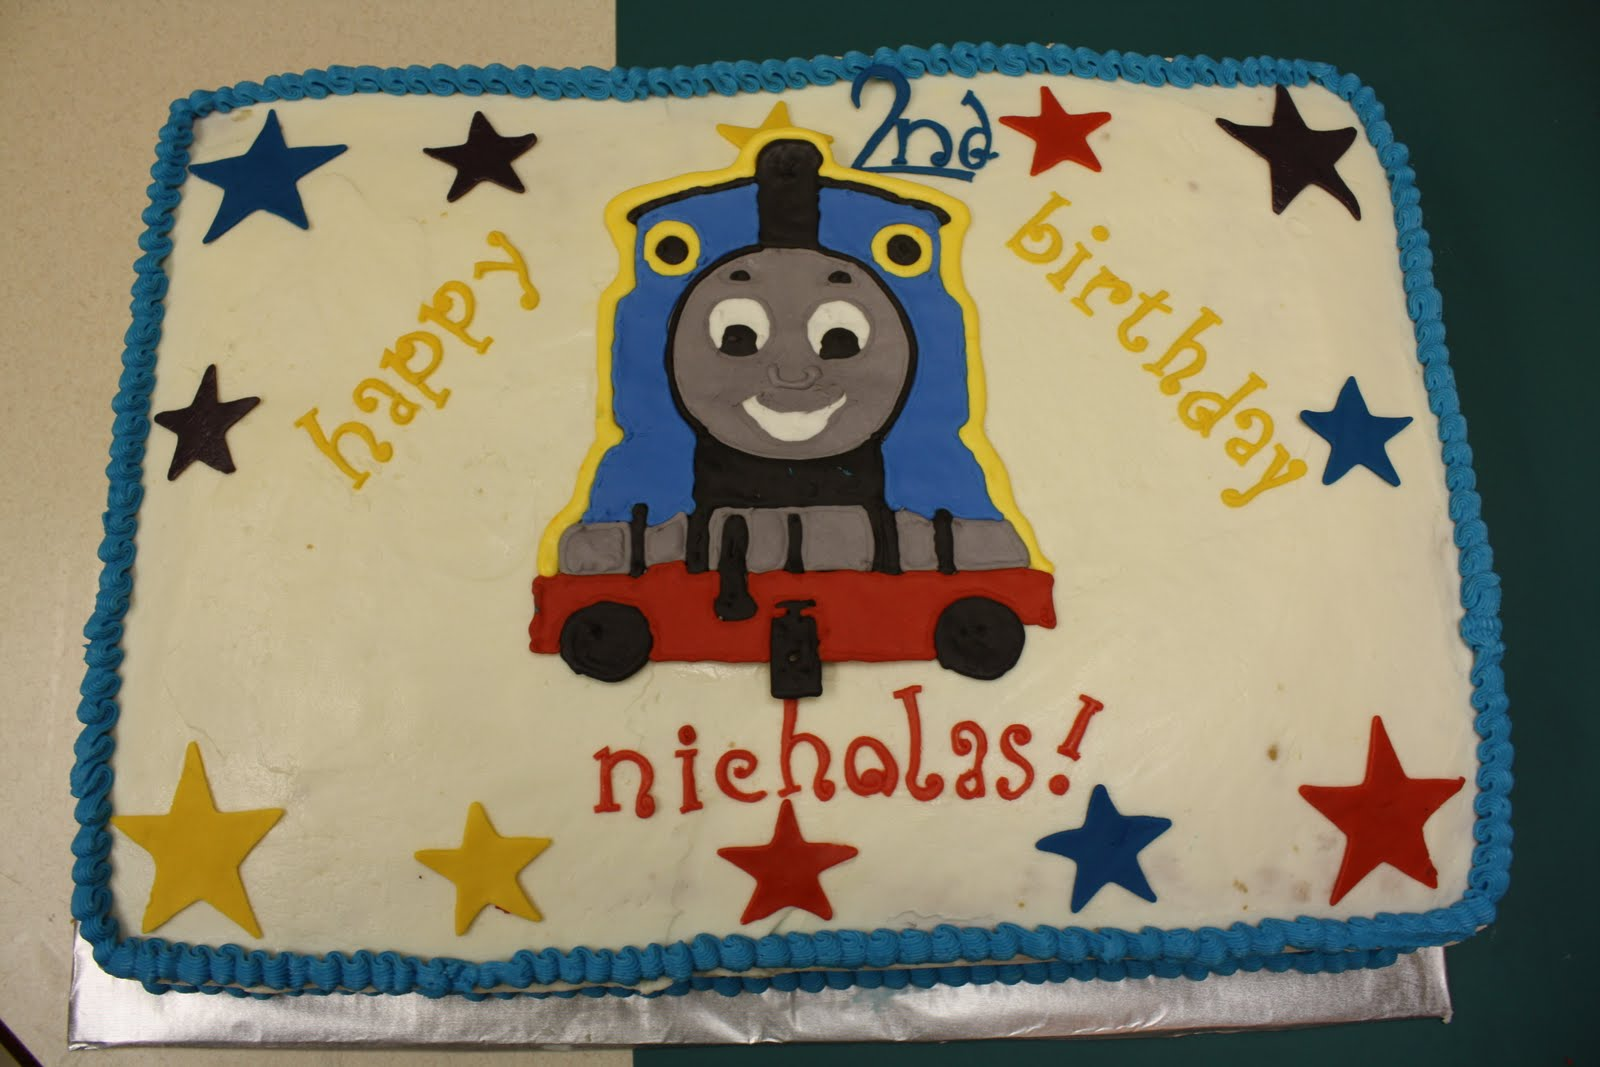 This Is A Full Sheet Cake With Thomas The Train Theme Bottom Layer Chocolate Top Classic White And There Generous Of